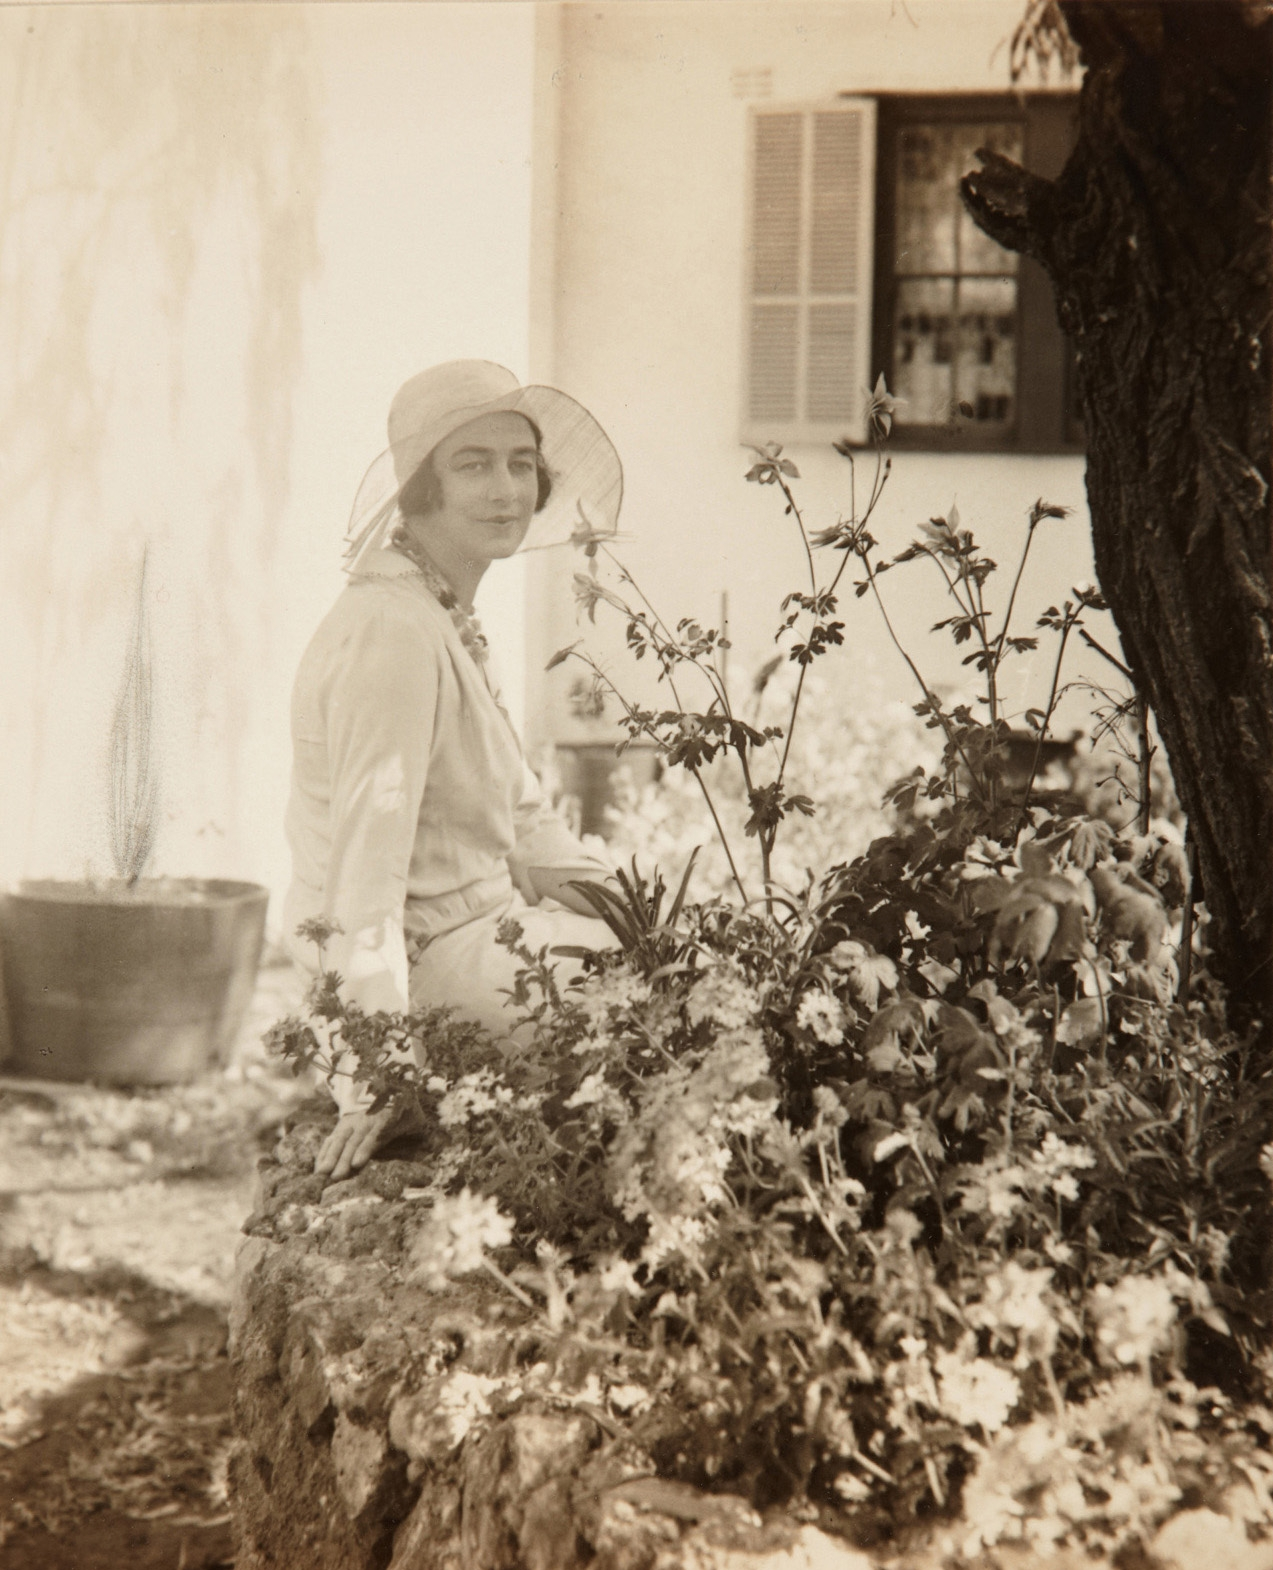 Mrs Muriel Mackay in the garden at Tinagroo homestead near Scone New South Wales, c1925